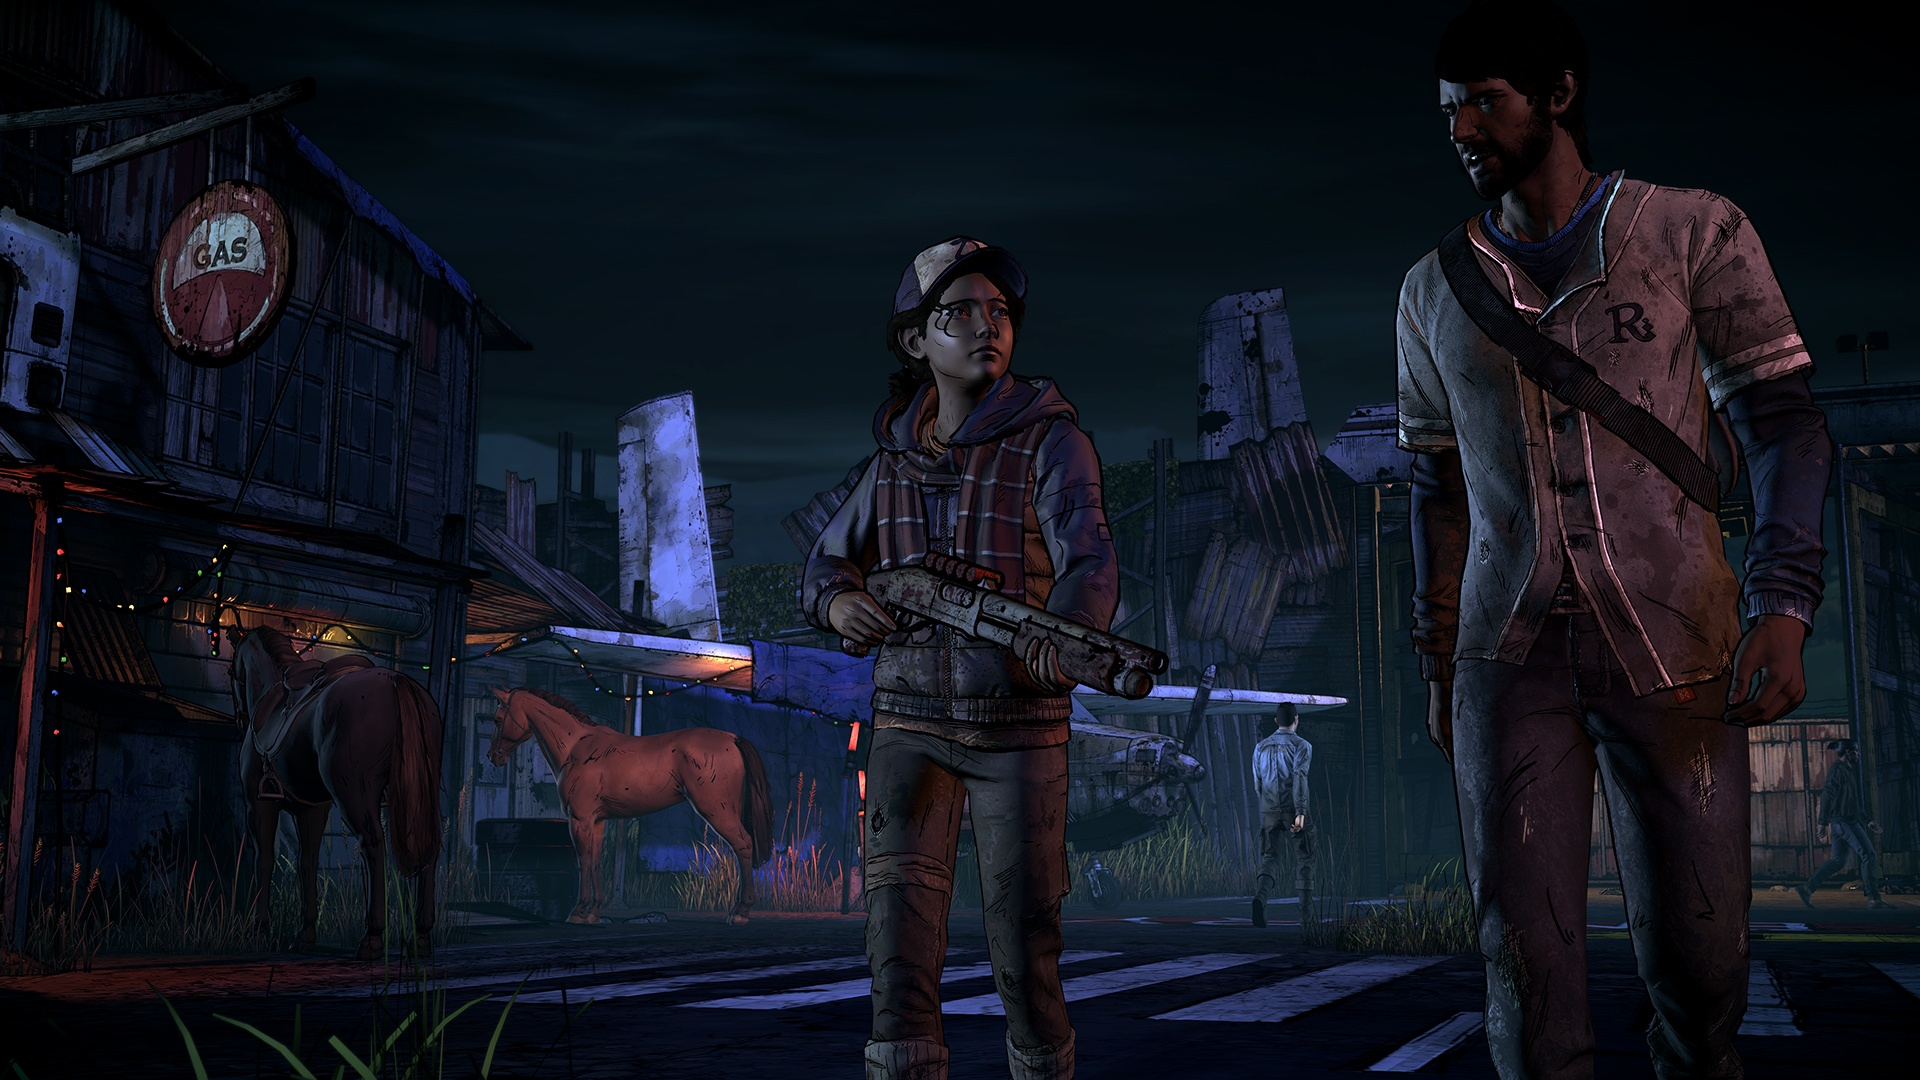 the-walking-dead-the-telltale-series-a-new-frontier-episode-two-ties-that-bind-part-ii-review-screenshot-2